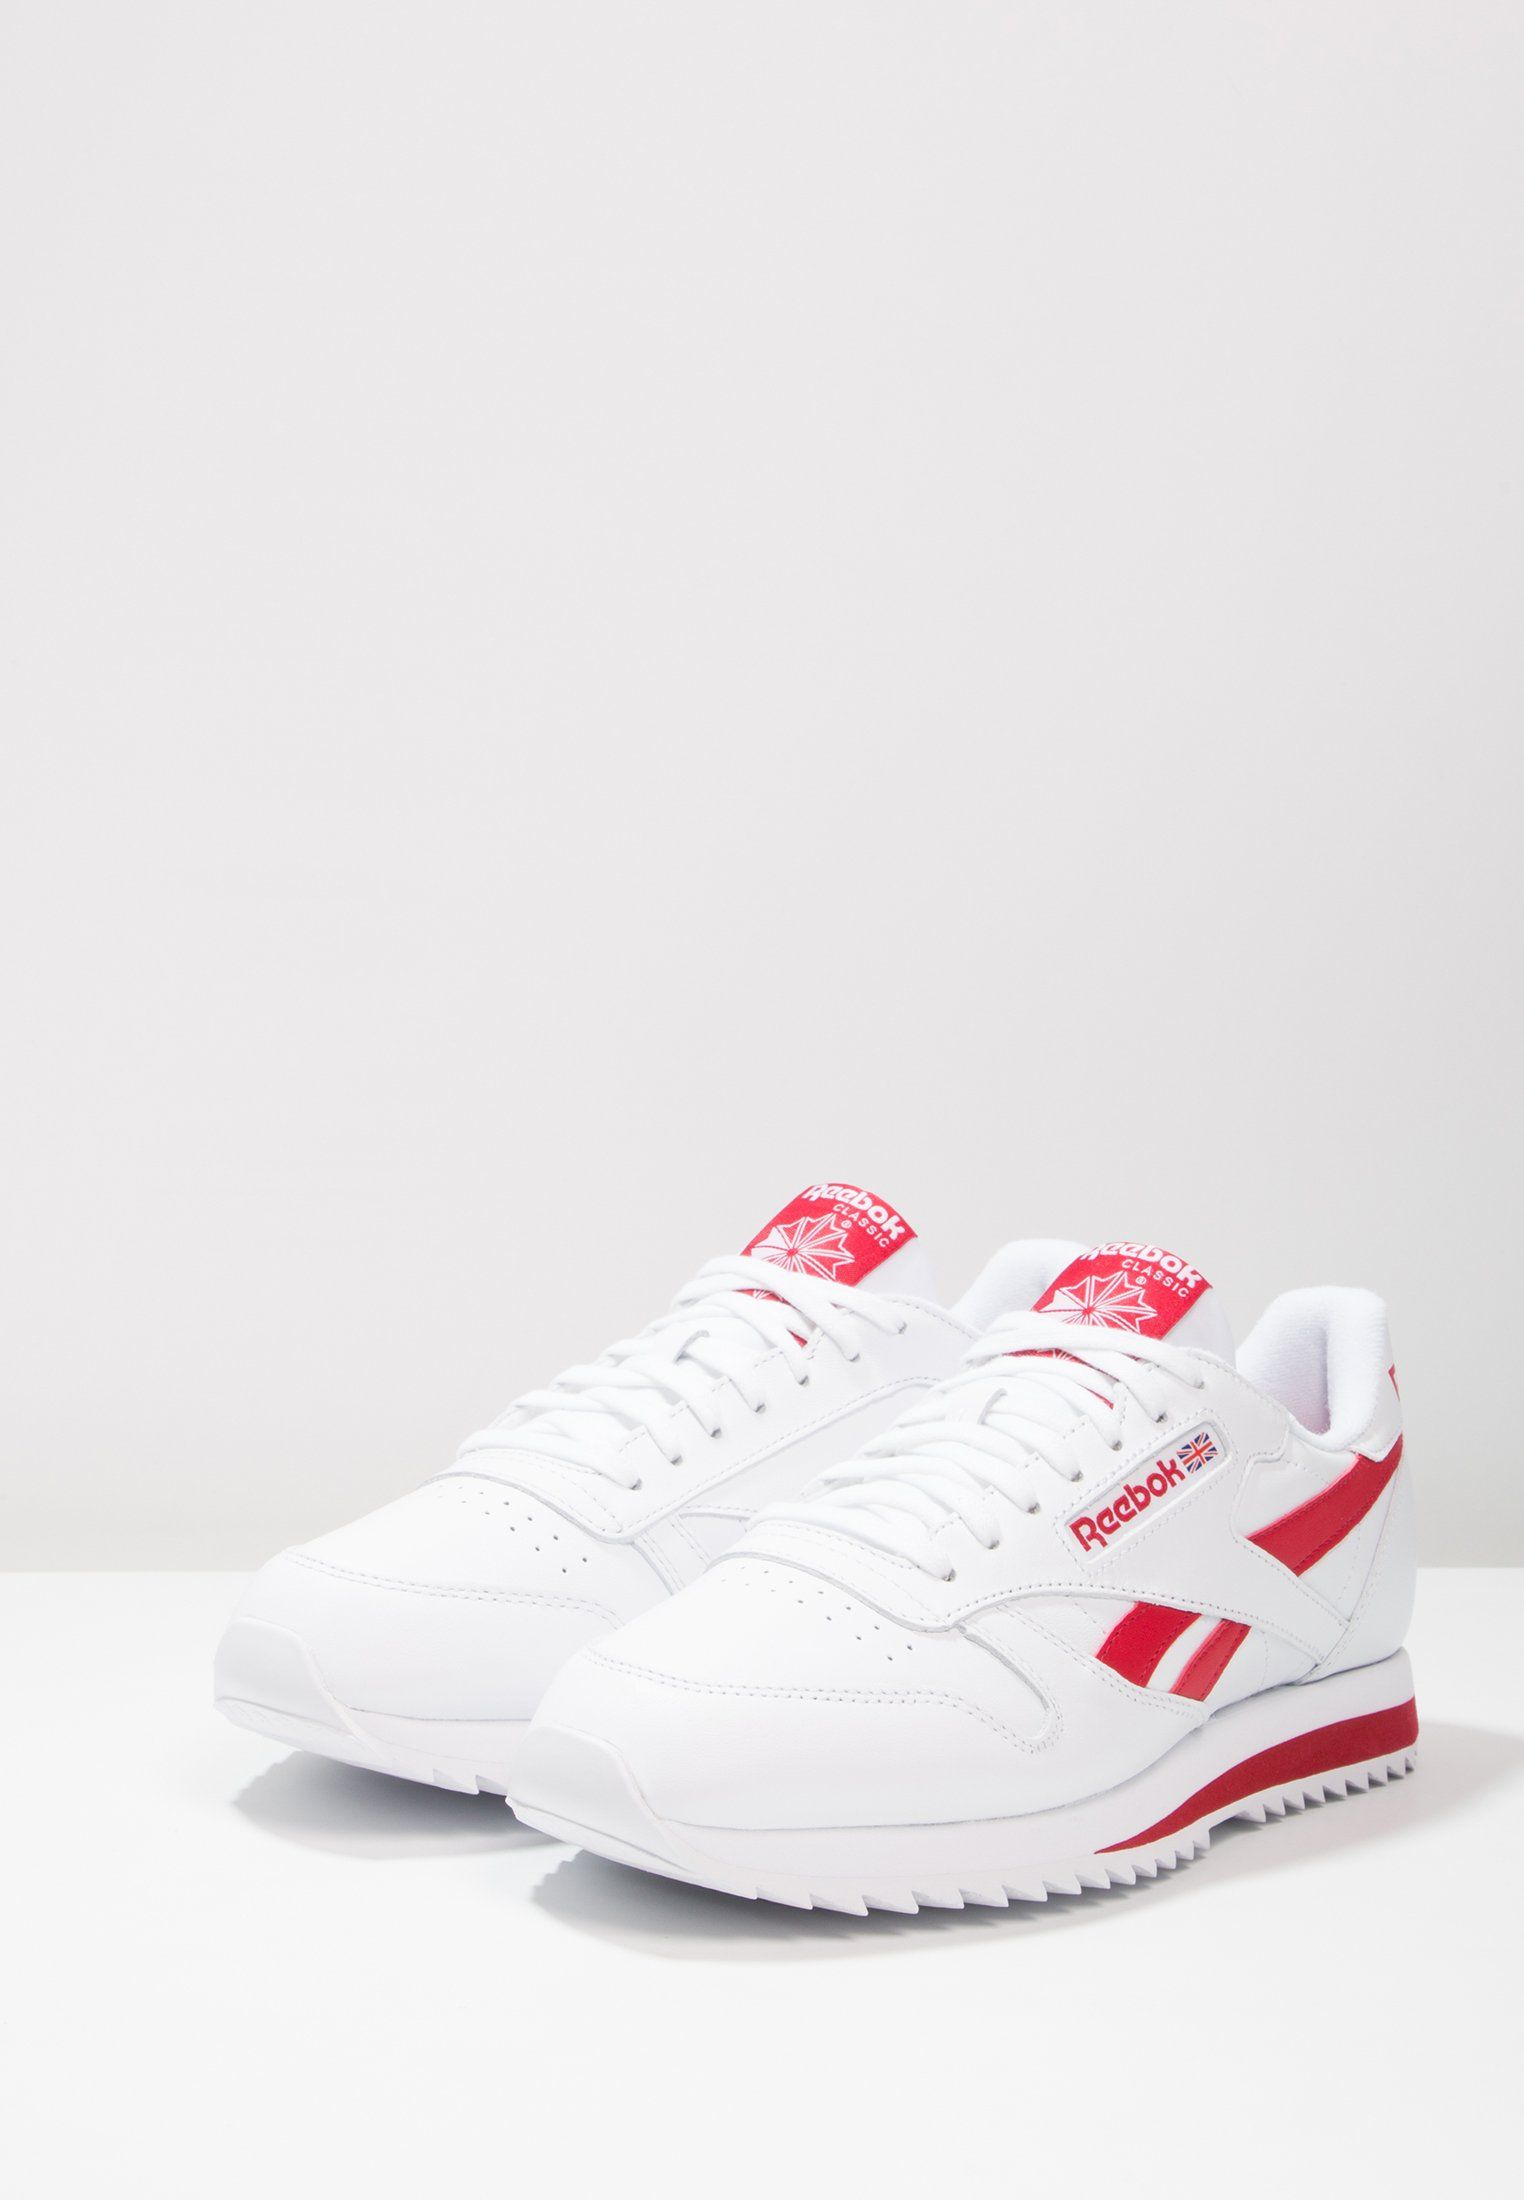 4316e4296 ... italy chaussures reebok classic cl leather ripple low bp baskets basses  white excellent red 3a651 8459f ...